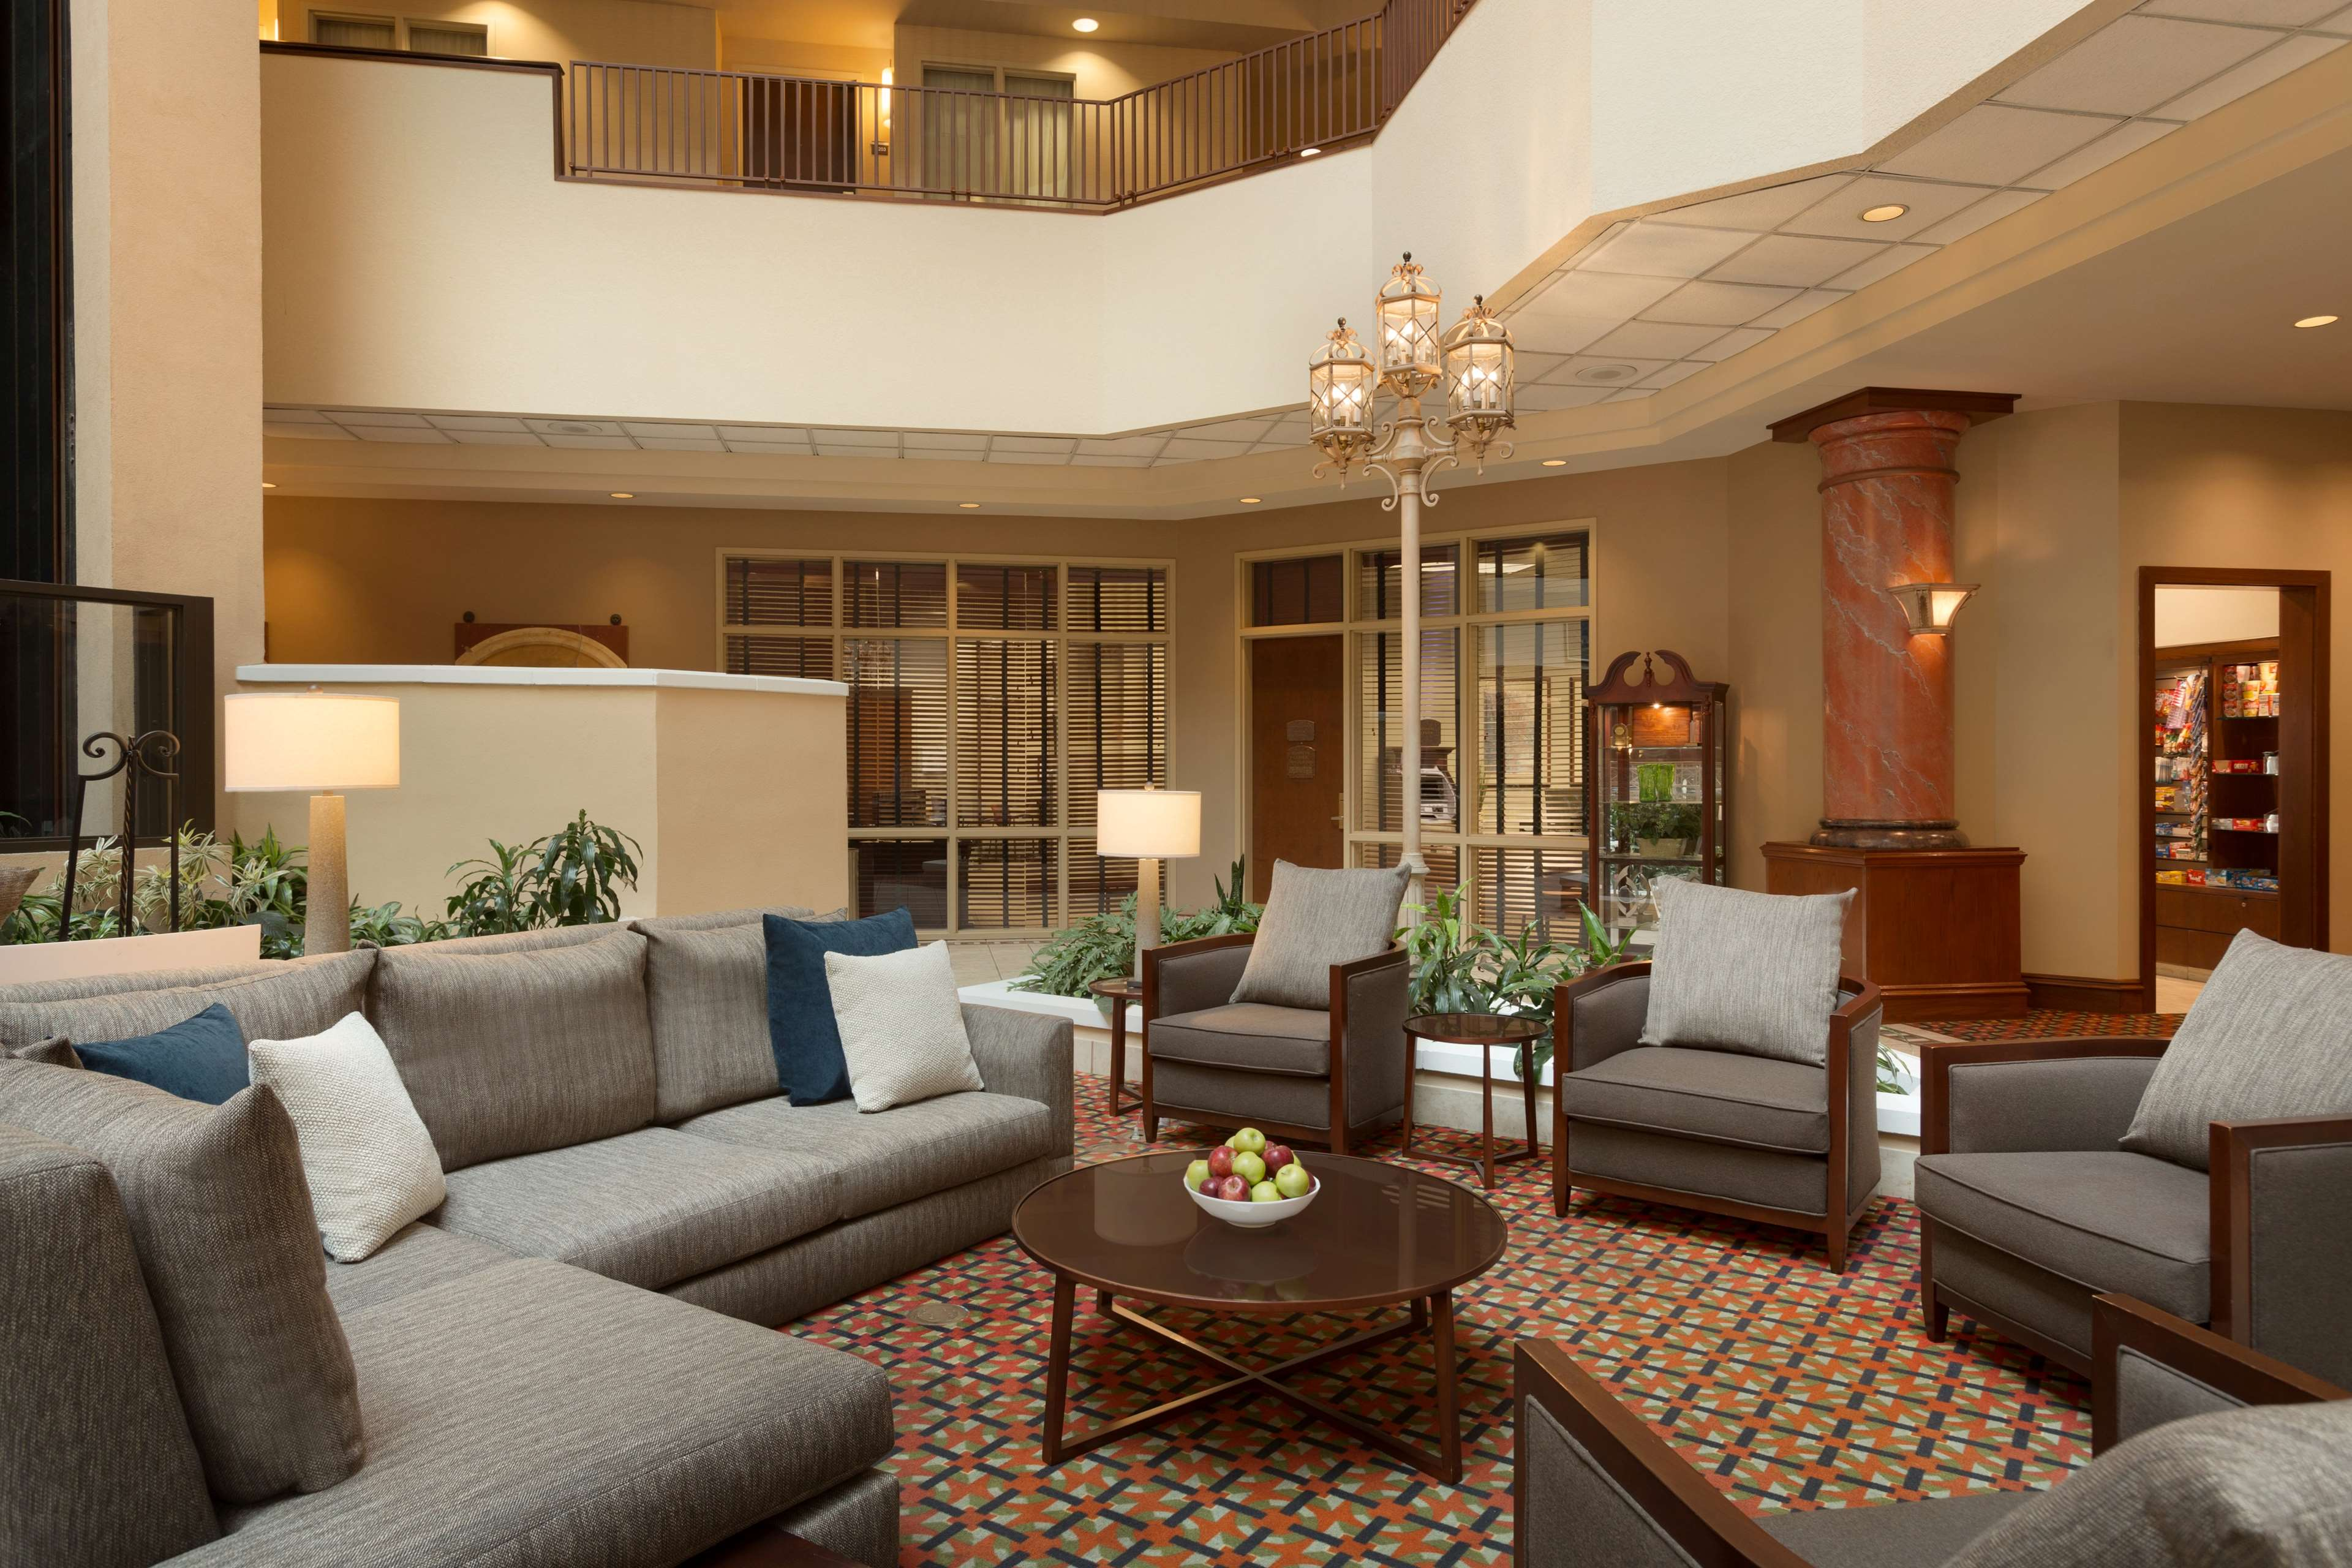 Embassy Suites by Hilton Charleston image 3